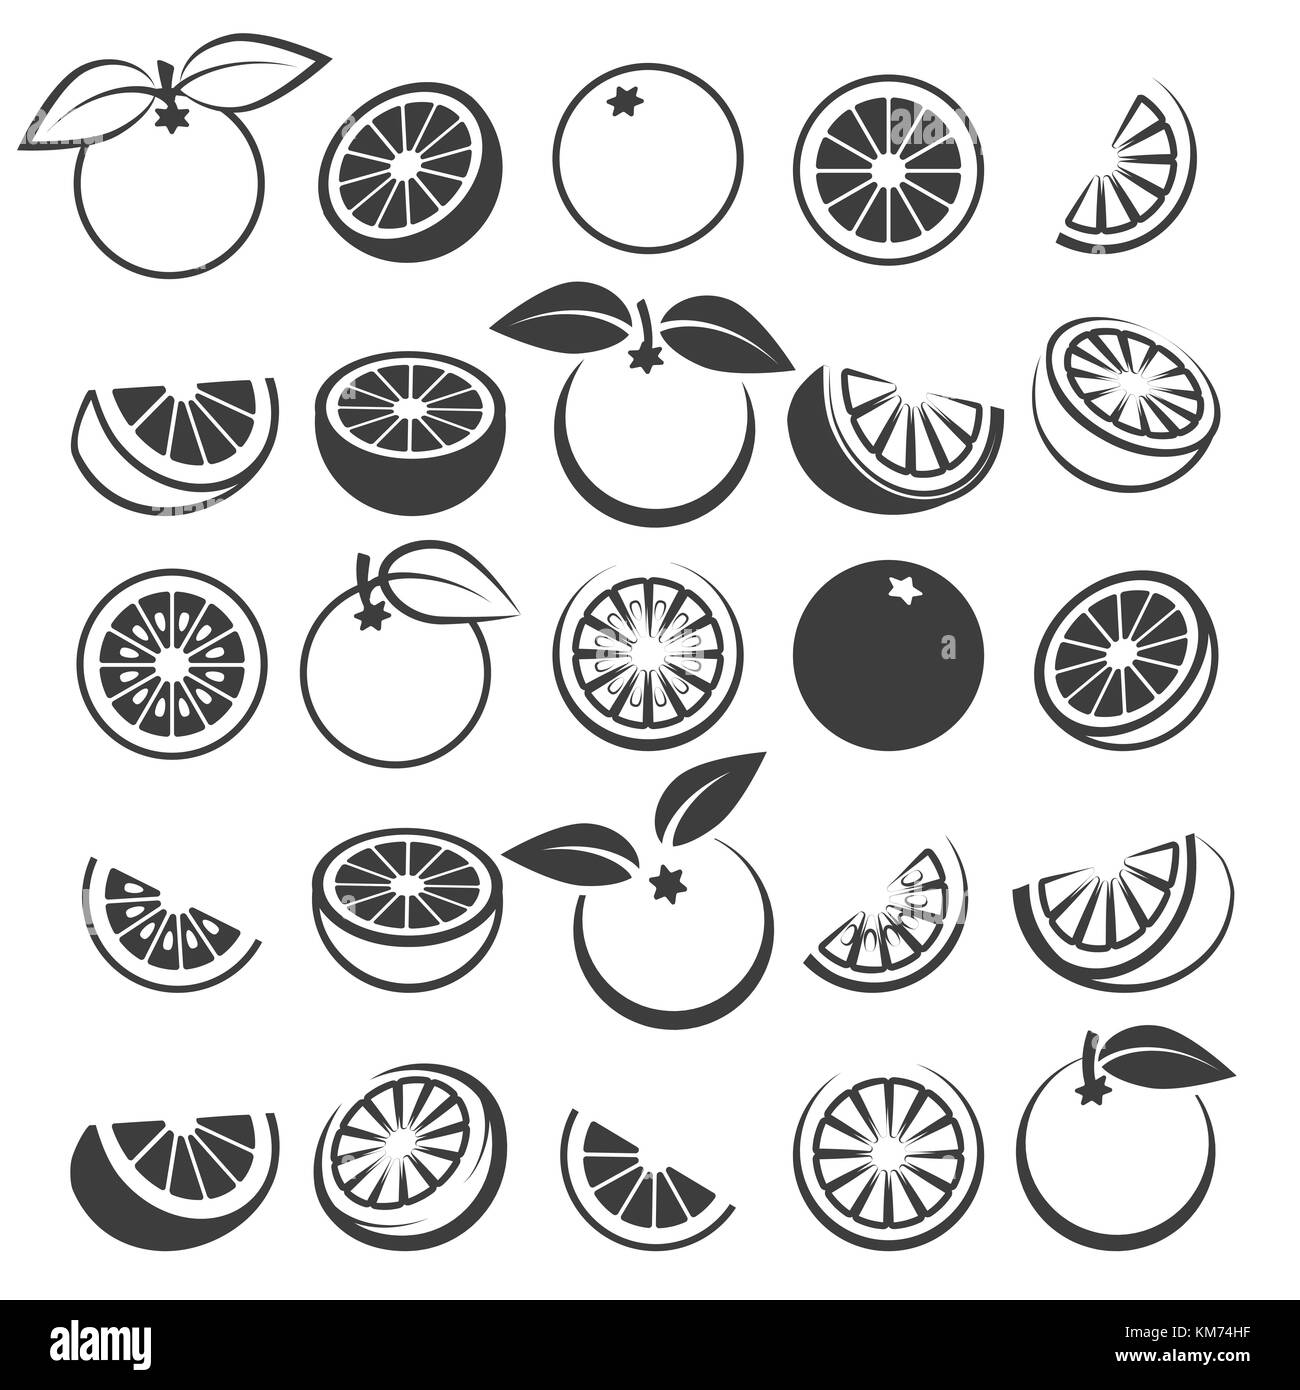 Orange icons. Tasty fresh vector black oranges fruits isolated on white background, citrus wedge, half and slices - Stock Image